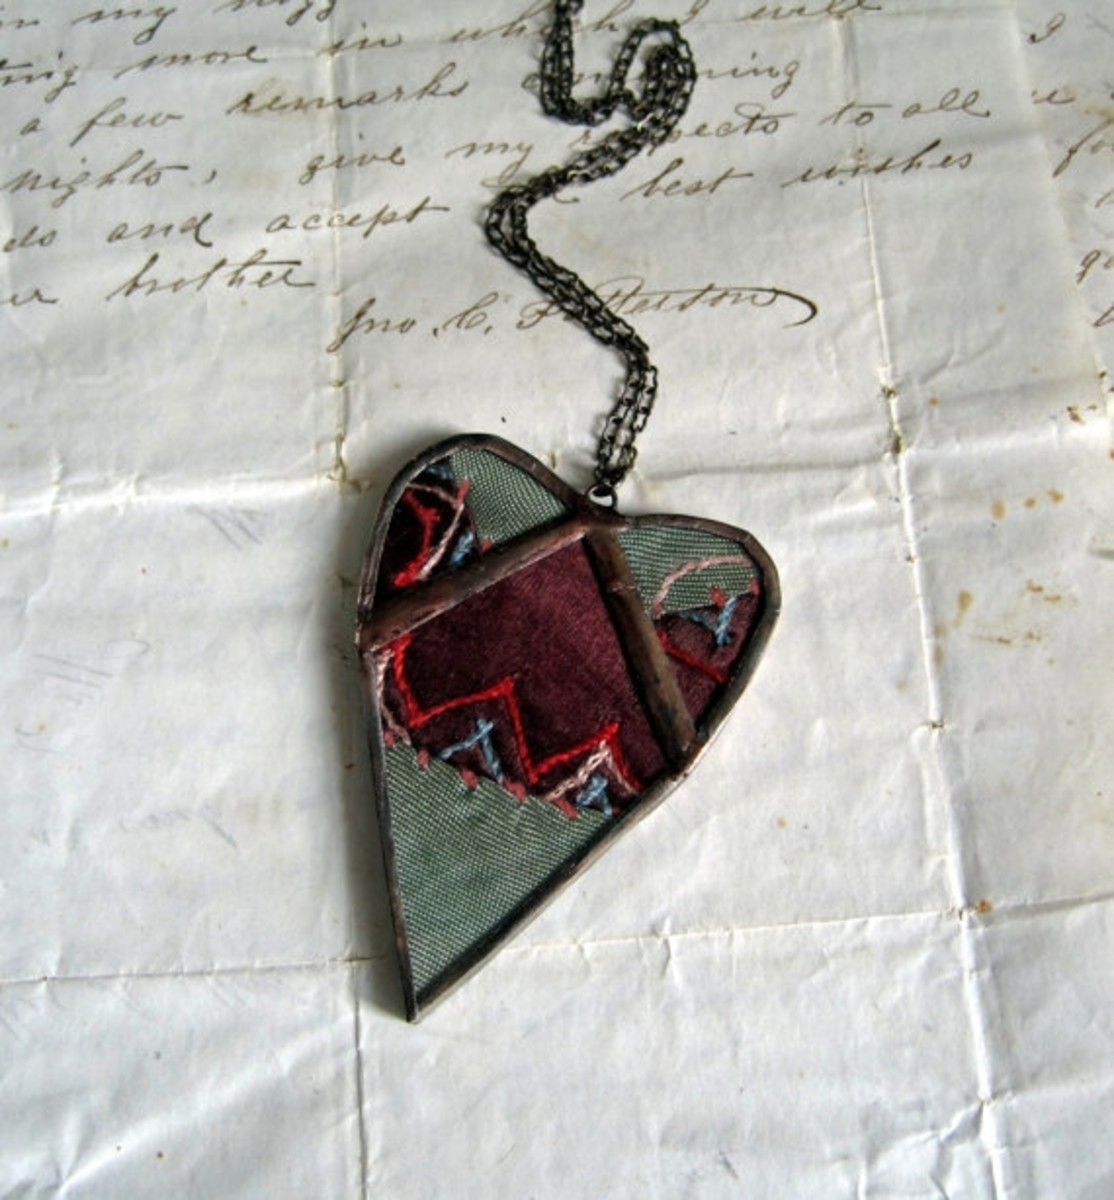 Necklace with a small piece of a crazy quilt under glass and soldered closed. Photo courtesy of     ThatOldBlueHouse2 at Etsy.